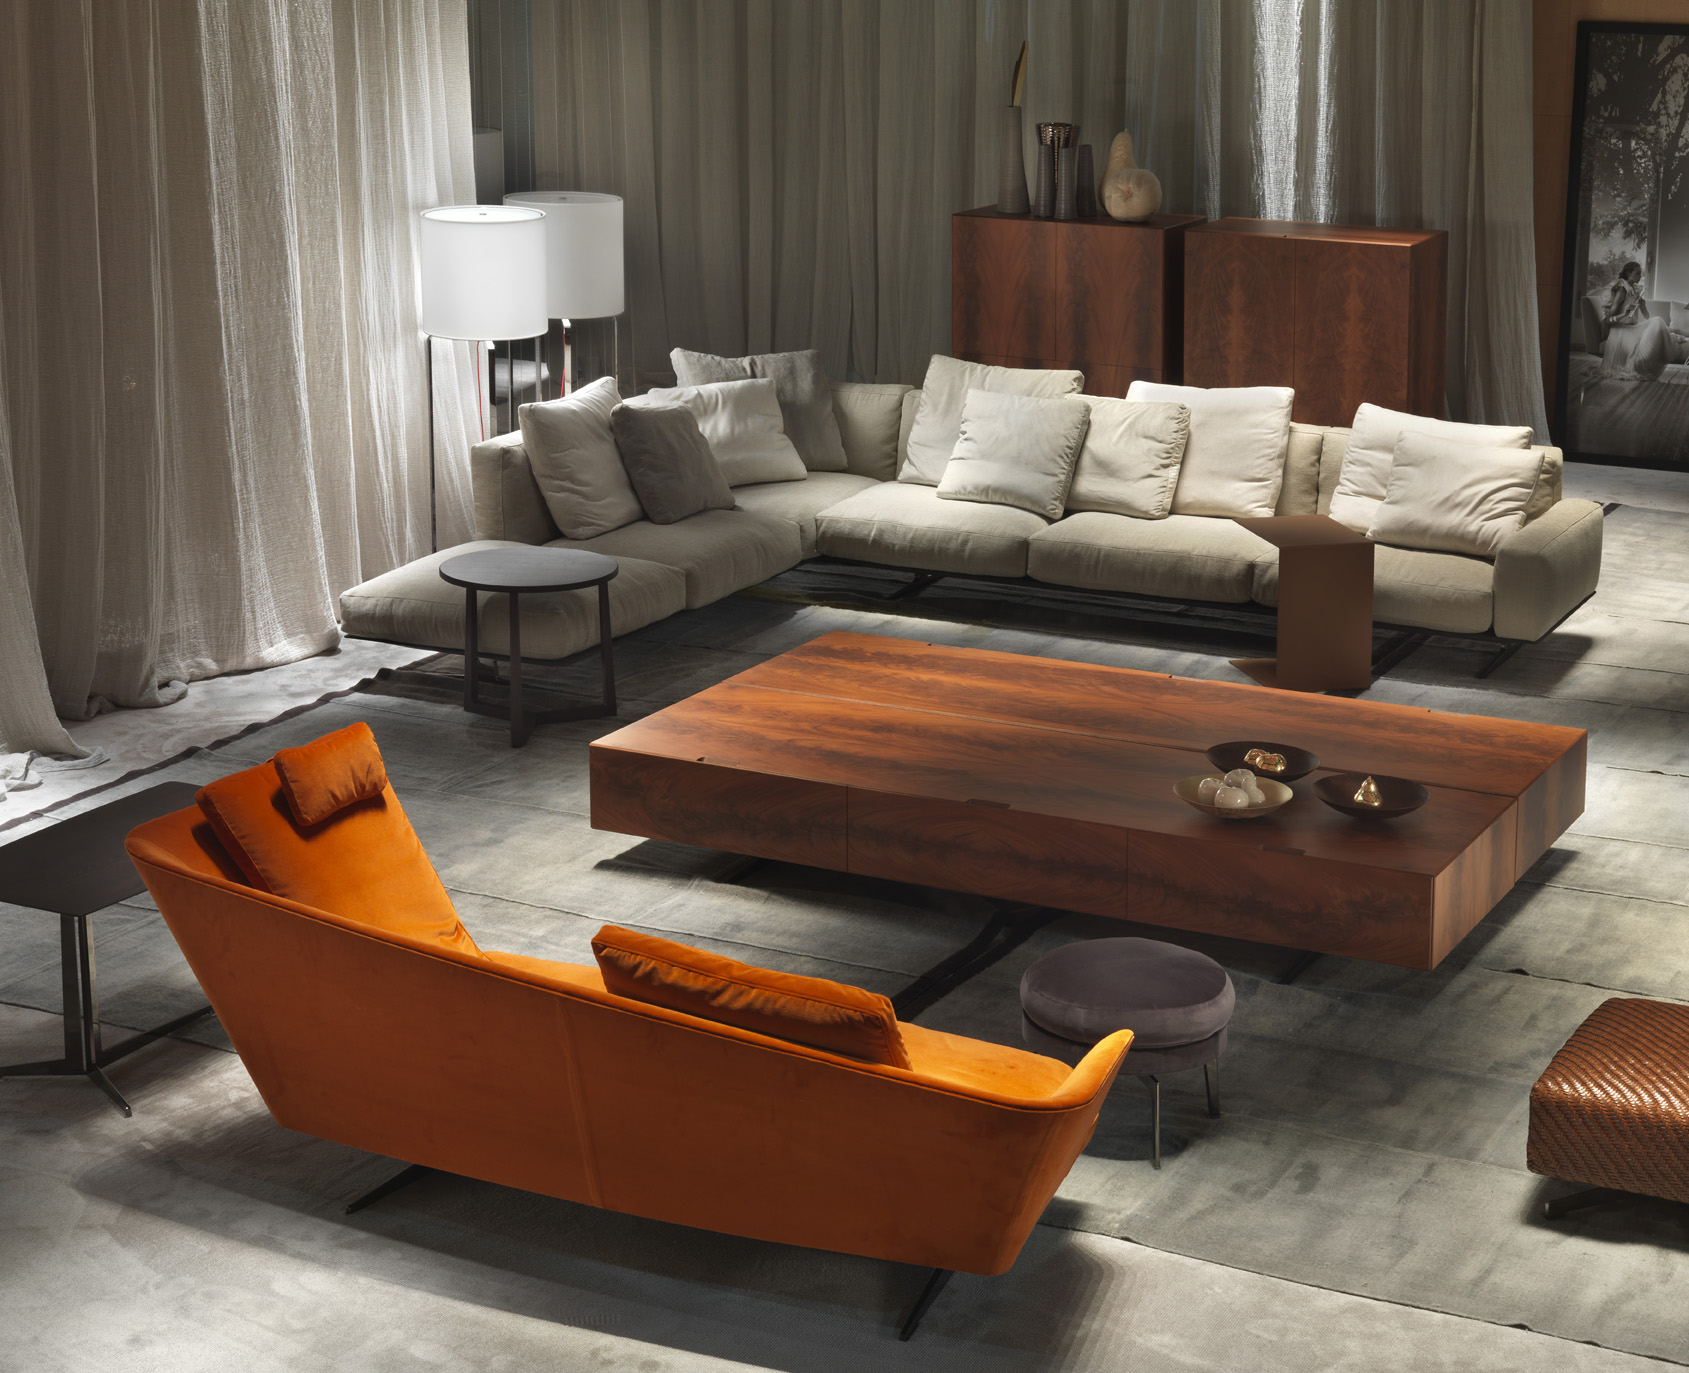 Best Quality Sofas Australia Fanuli Furniture Fine Contemporary Furniture From Italy